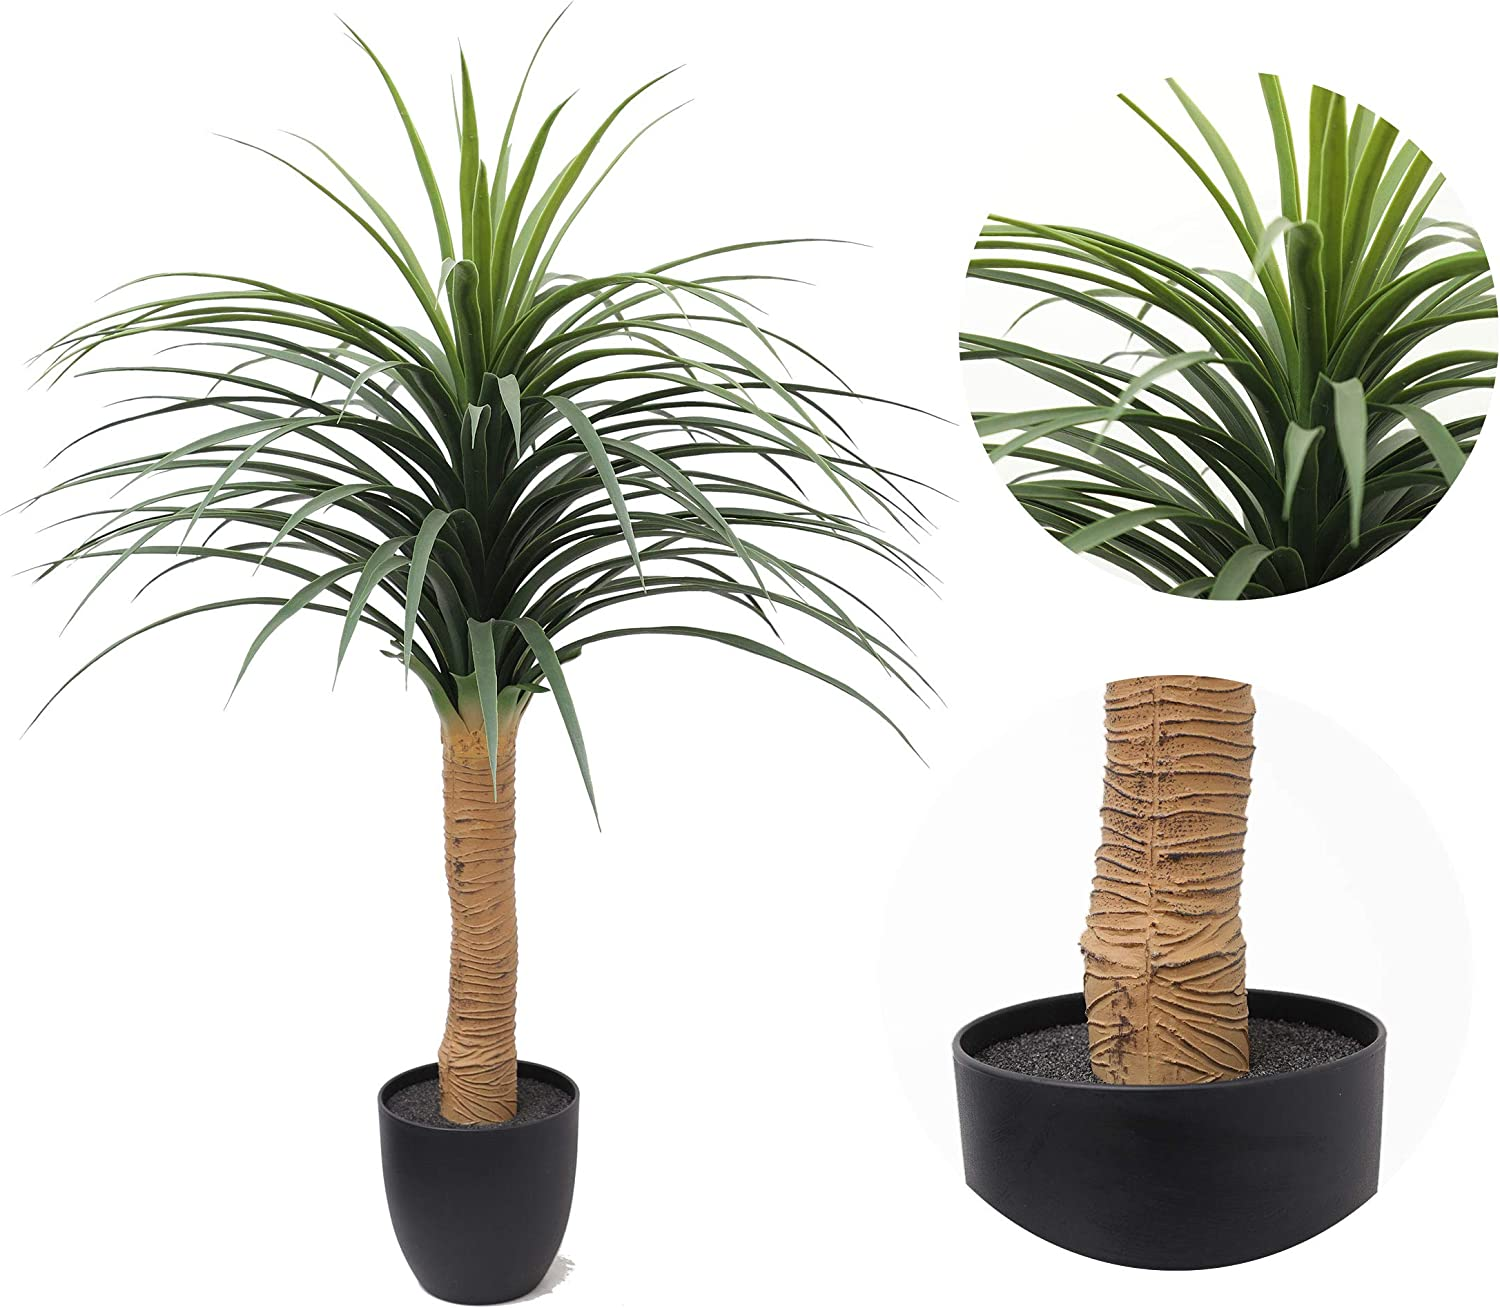 Artificial Yucca Plant,Fake Tree,Artificial Rubber Tree Plant,Artificial Palm Trees for Home Decor,Indoor and Outdoors,46inch